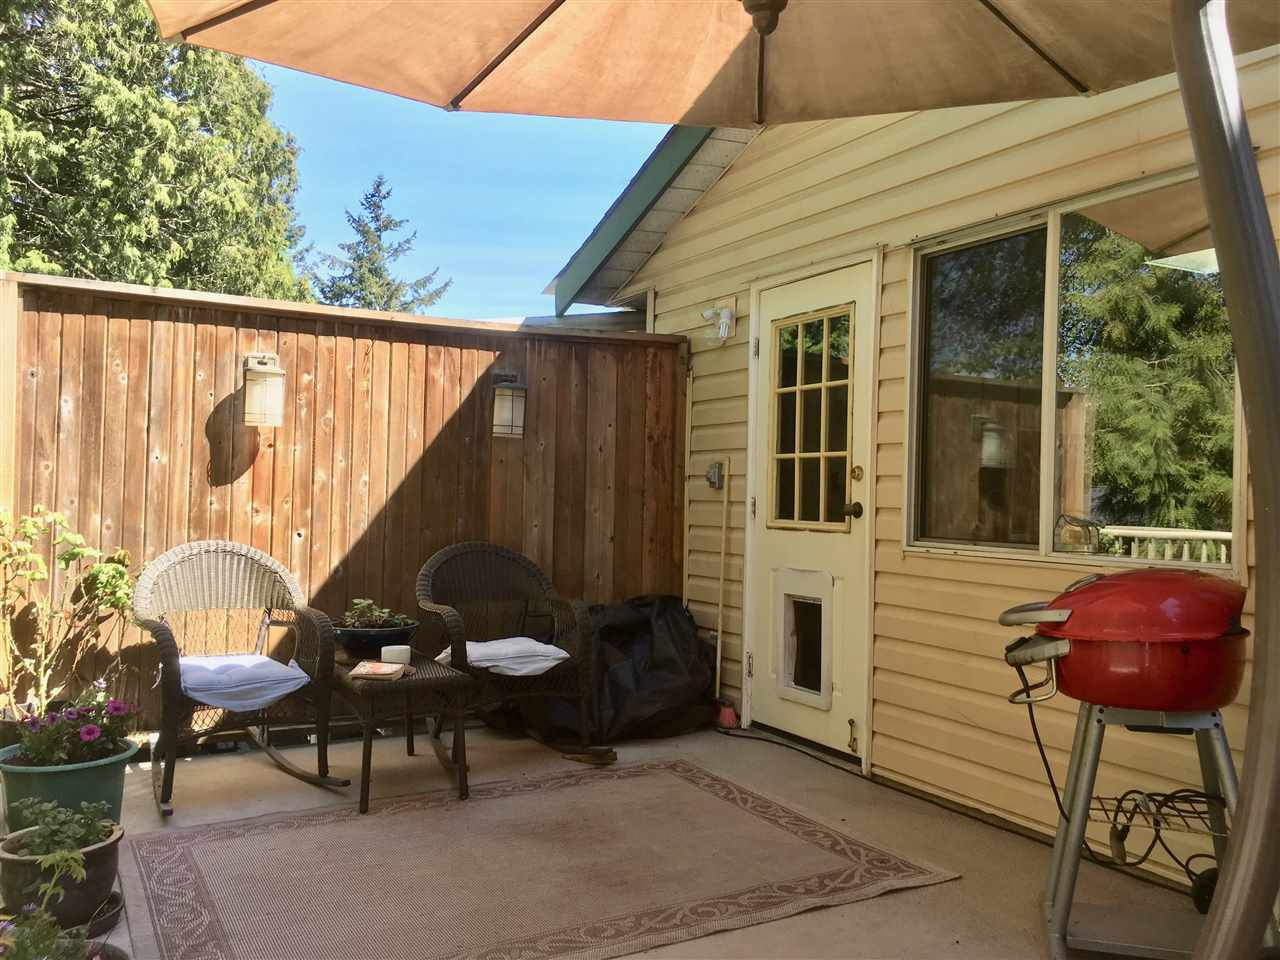 """Photo 12: Photos: 1958 158A Street in Surrey: King George Corridor House 1/2 Duplex for sale in """"King George Corridor"""" (South Surrey White Rock)  : MLS®# R2368433"""